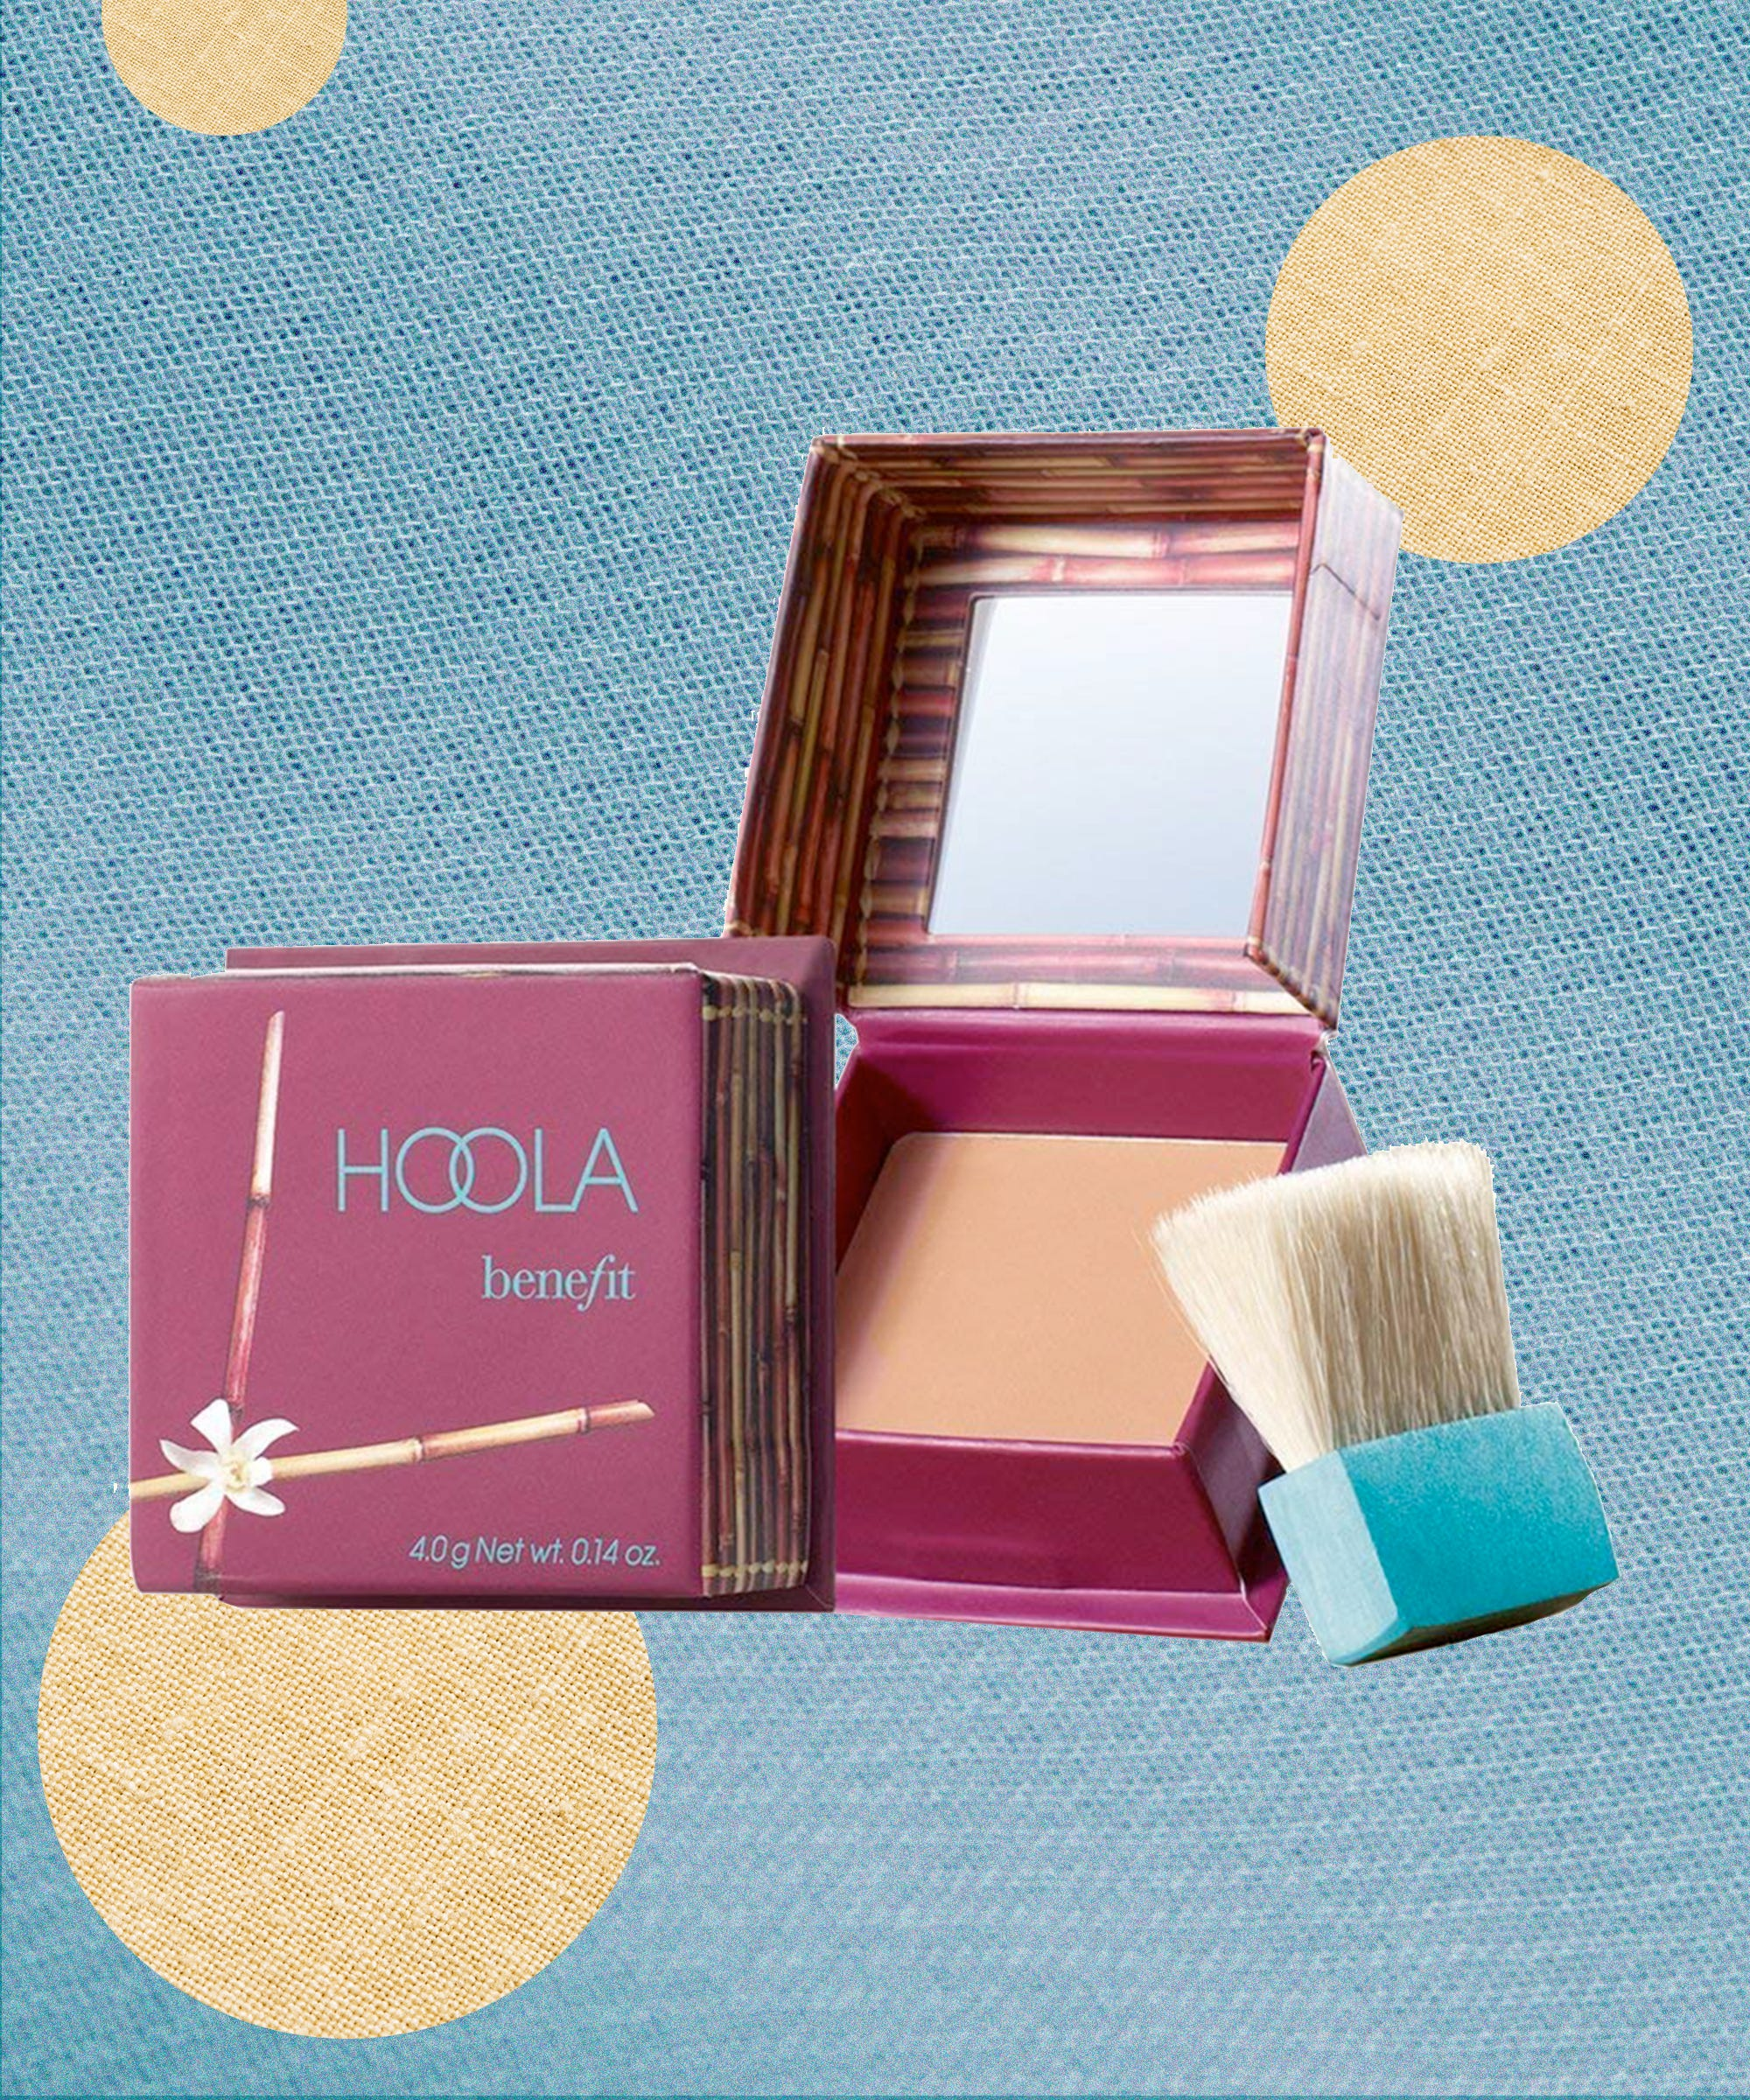 Cant-Miss Daily Deals At Ultas 21 Days Of Beauty Sale Cant-Miss Daily Deals At Ultas 21 Days Of Beauty Sale new pictures